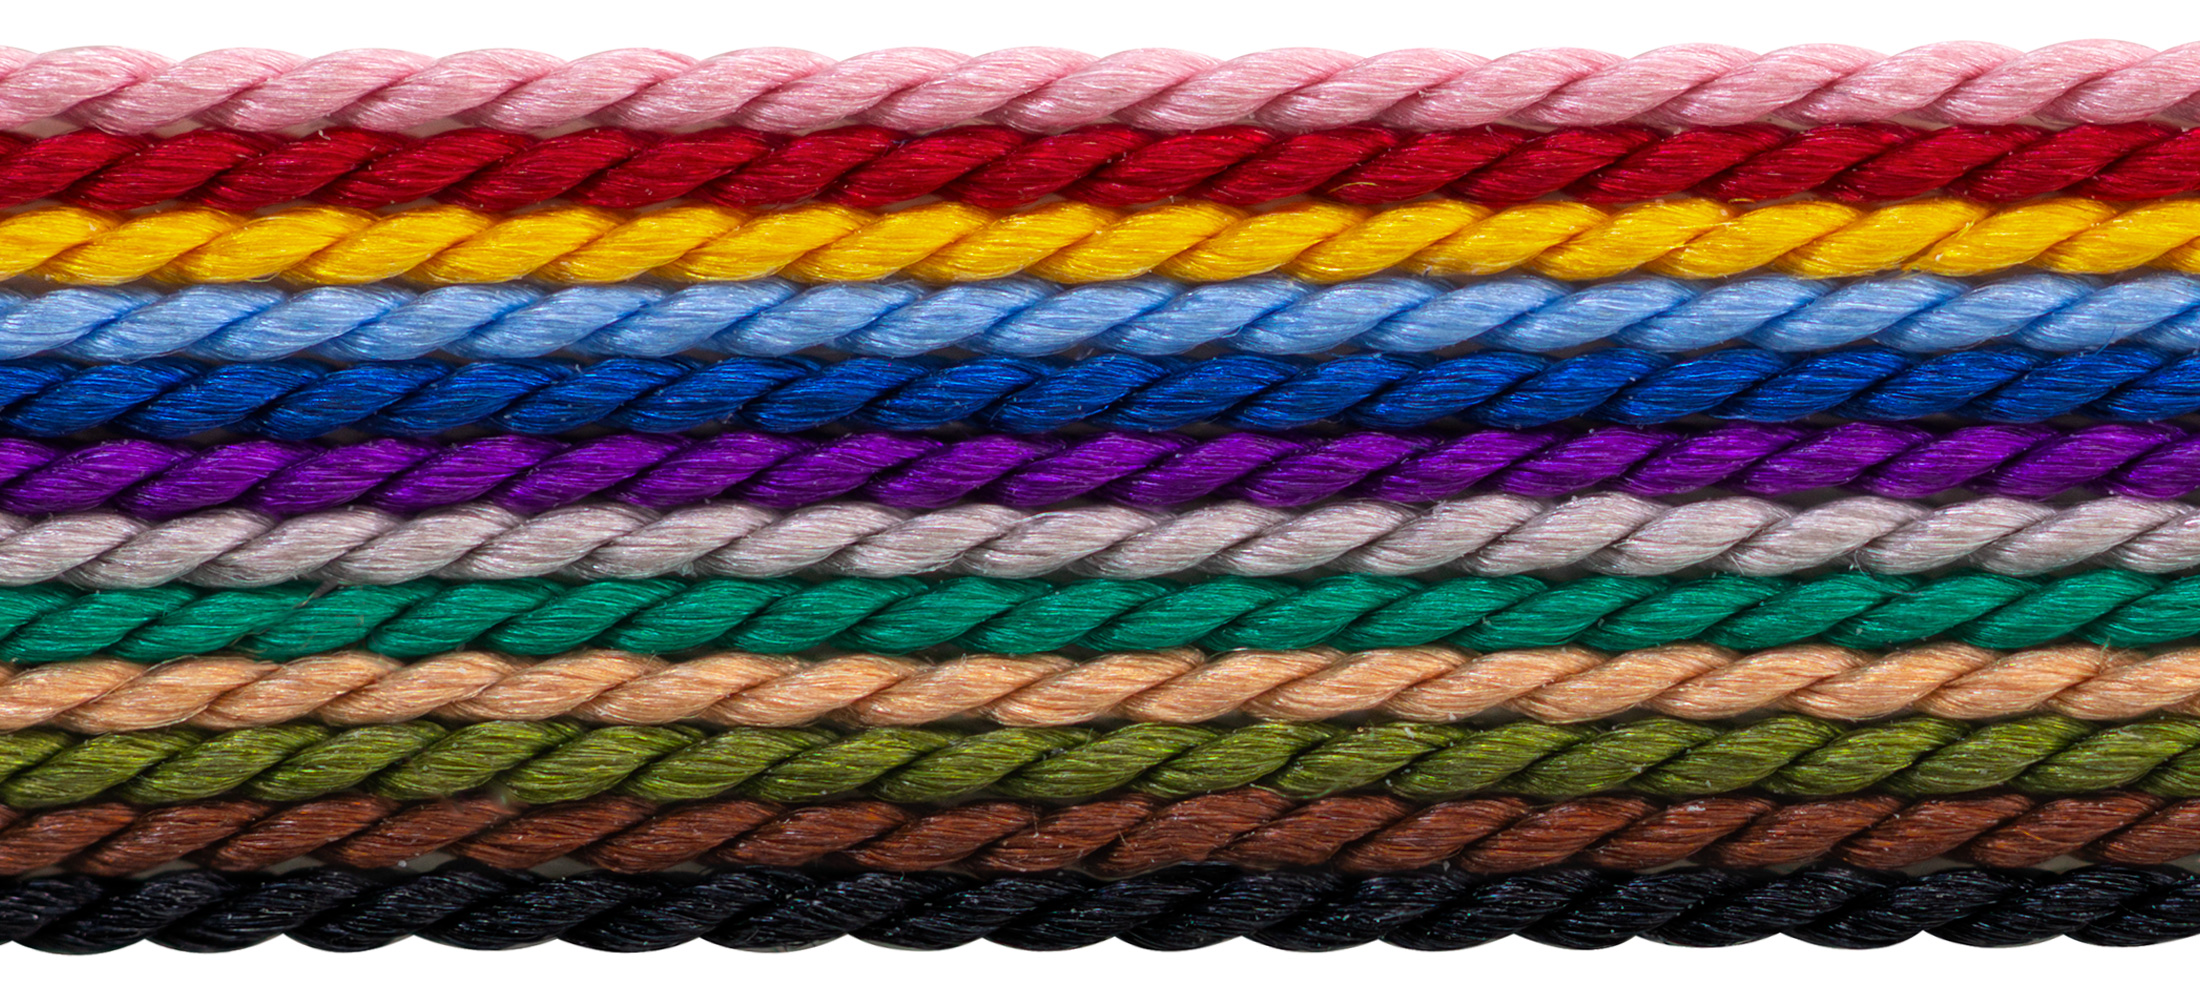 Colour of the cord *